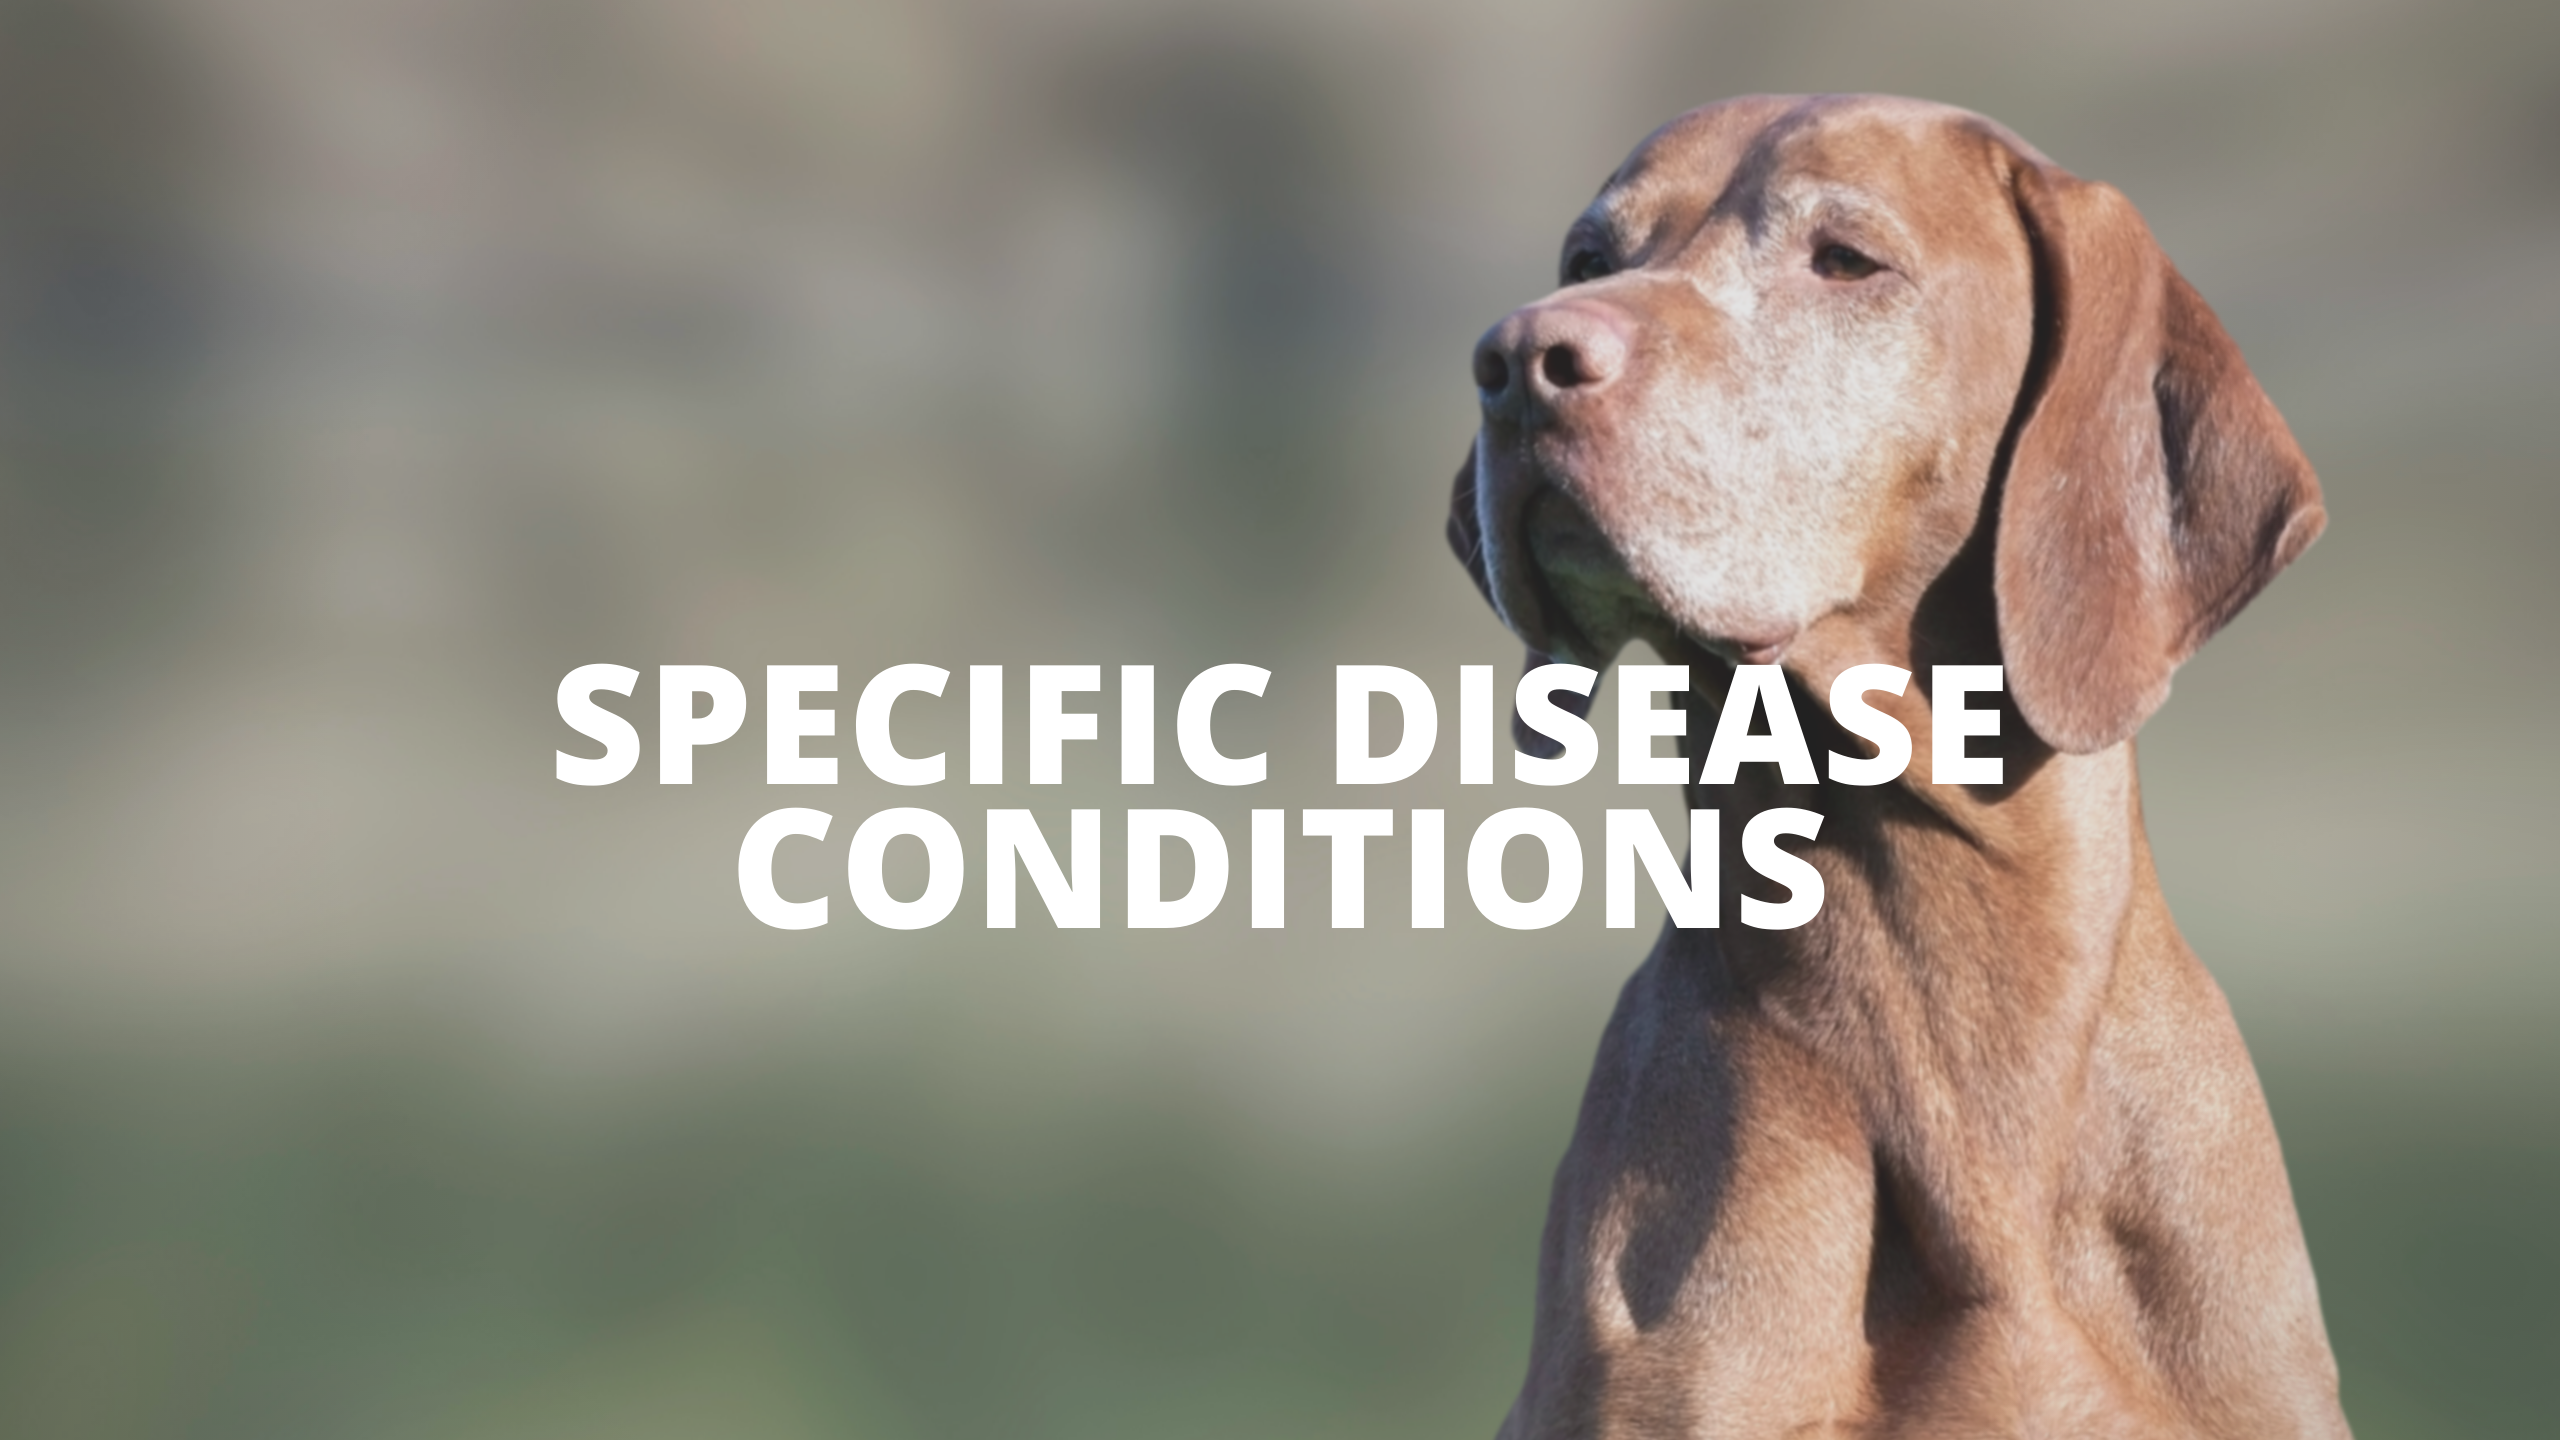 Specific Disease Conditions